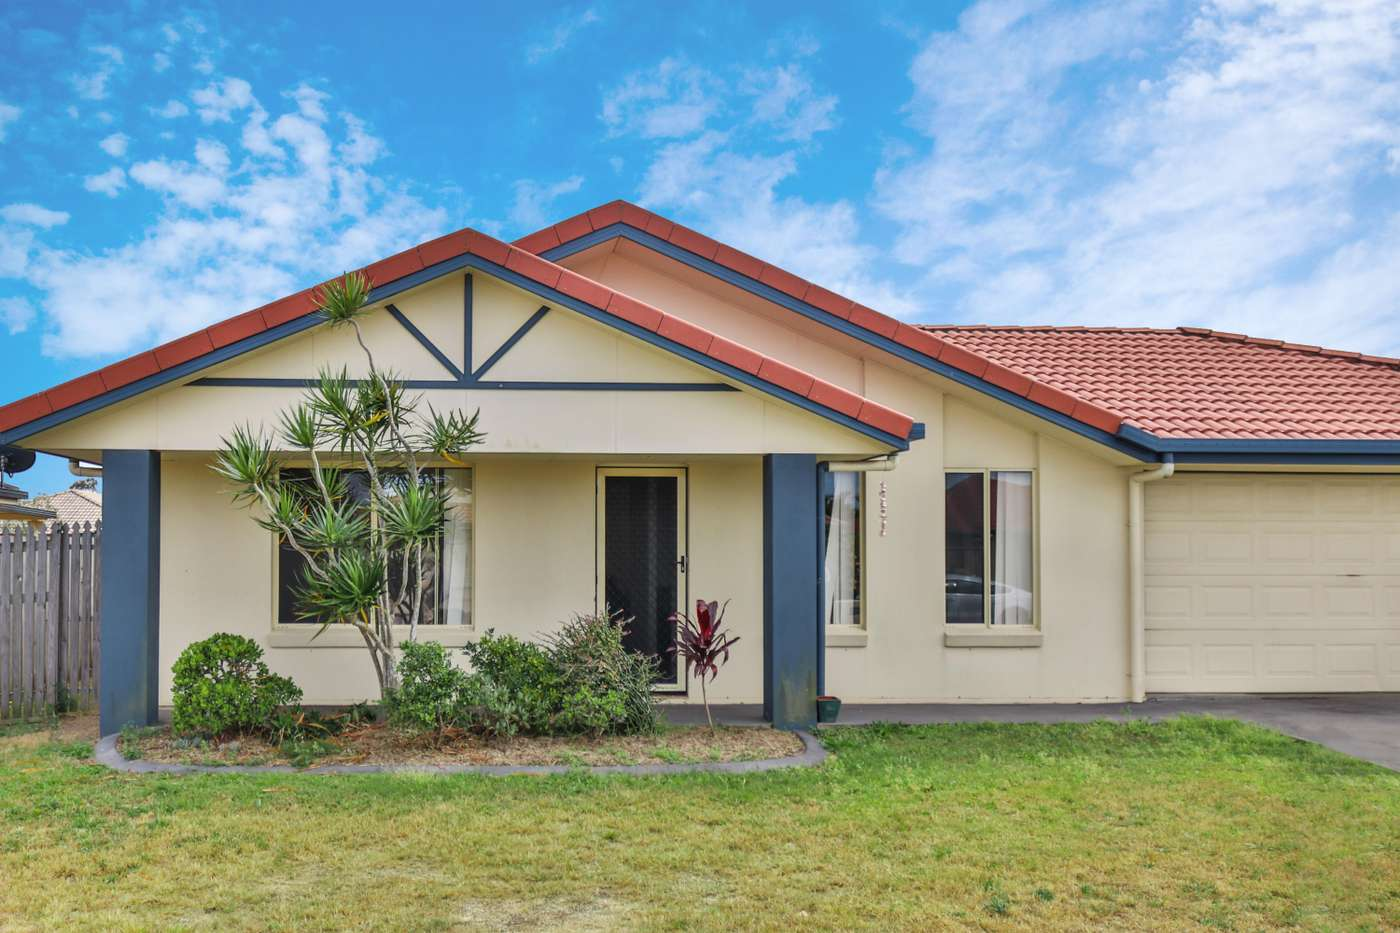 Main view of Homely house listing, 46 Bounty Circuit, Eli Waters, QLD 4655